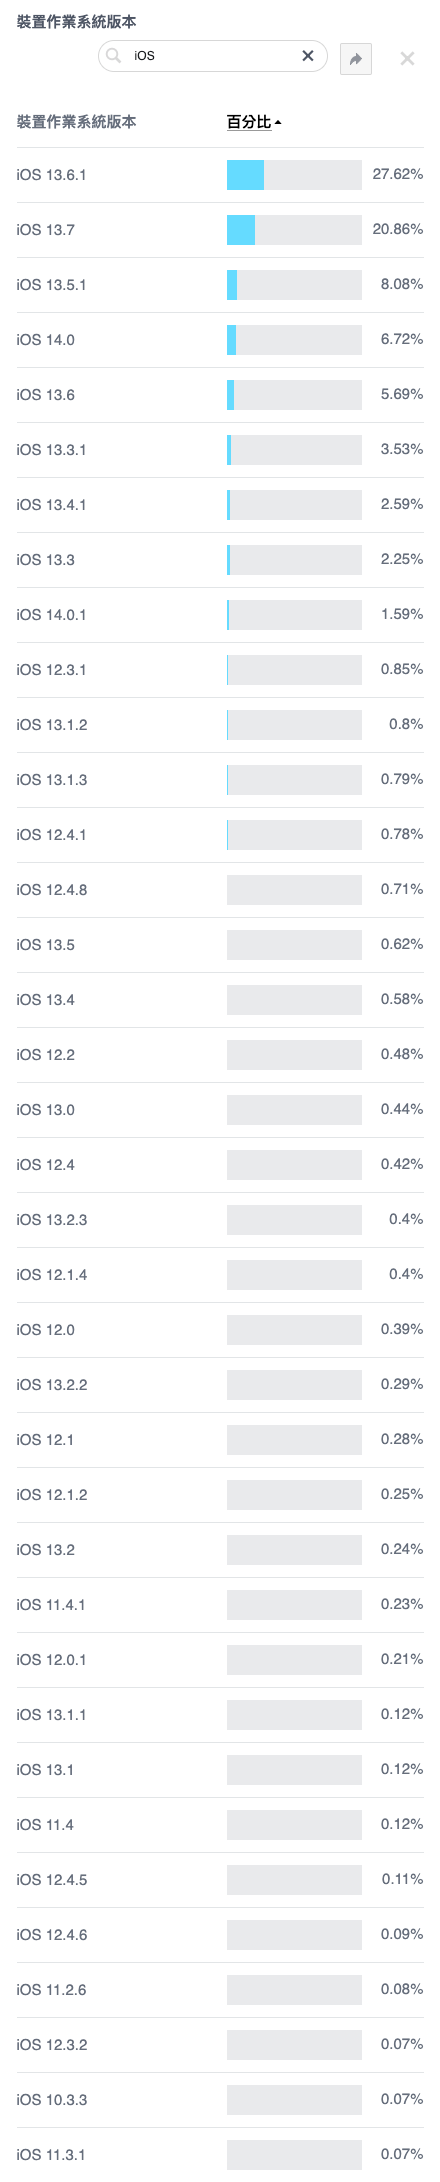 快樂印 Facebook 2020 iOS and iPadOS Usage